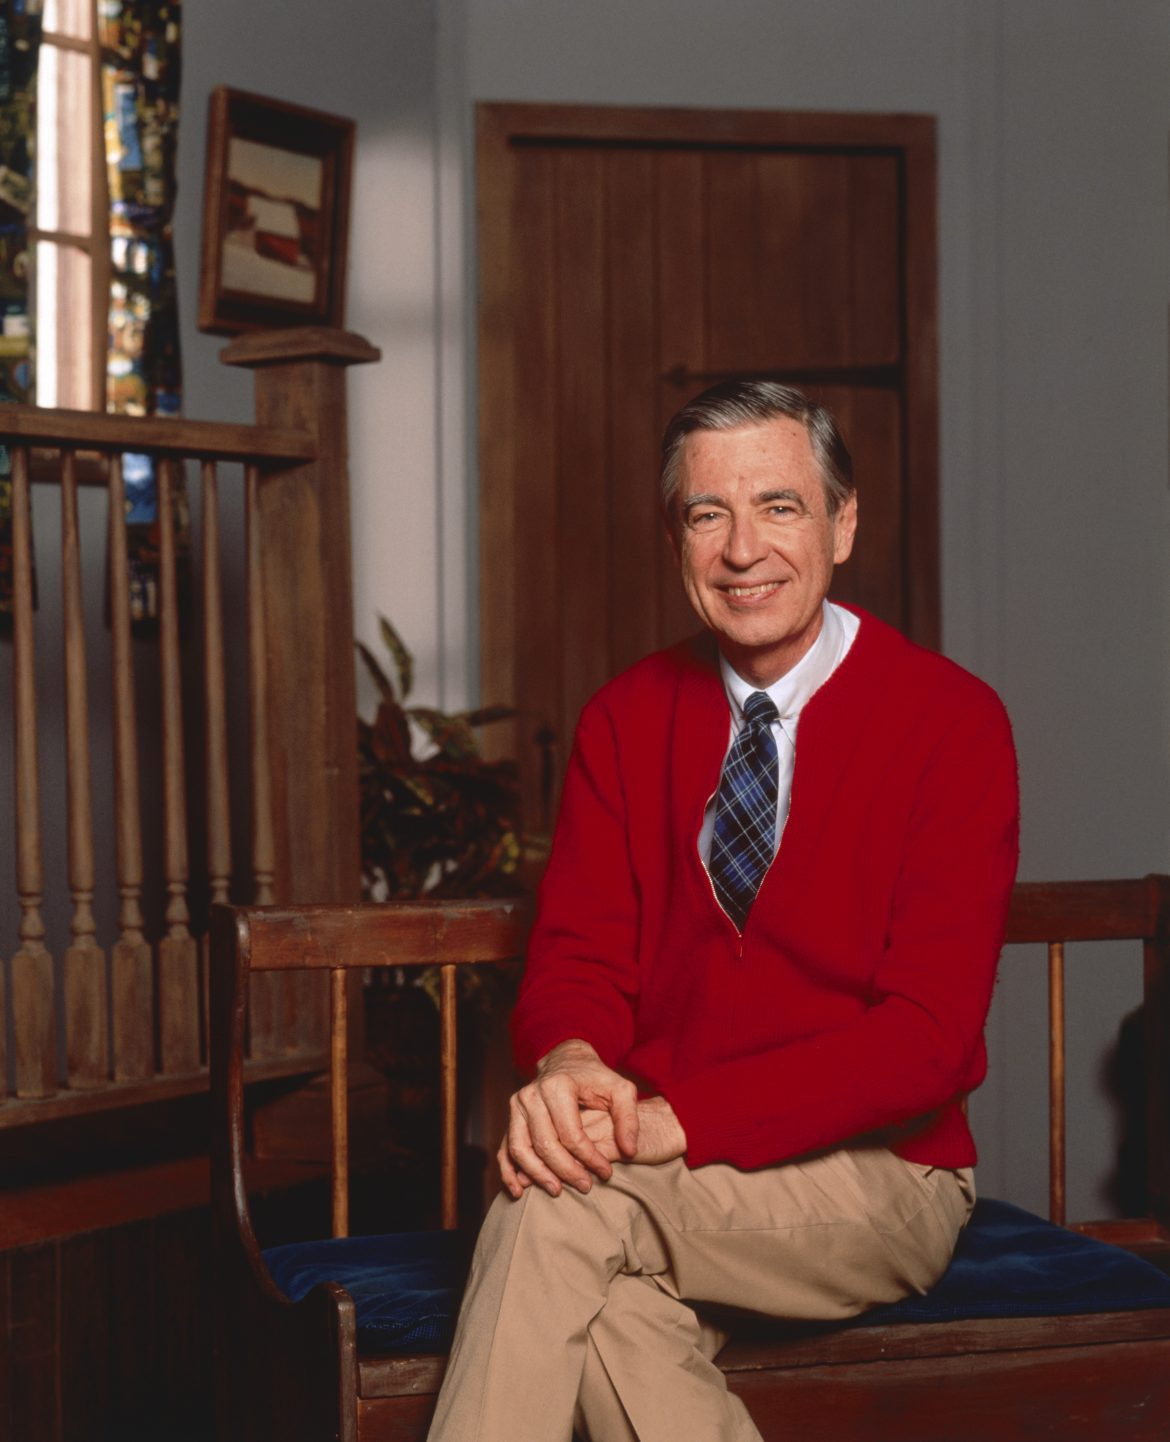 The Timeless Story Of A Man Of Grace And His Neighbourhood Mister Rogers